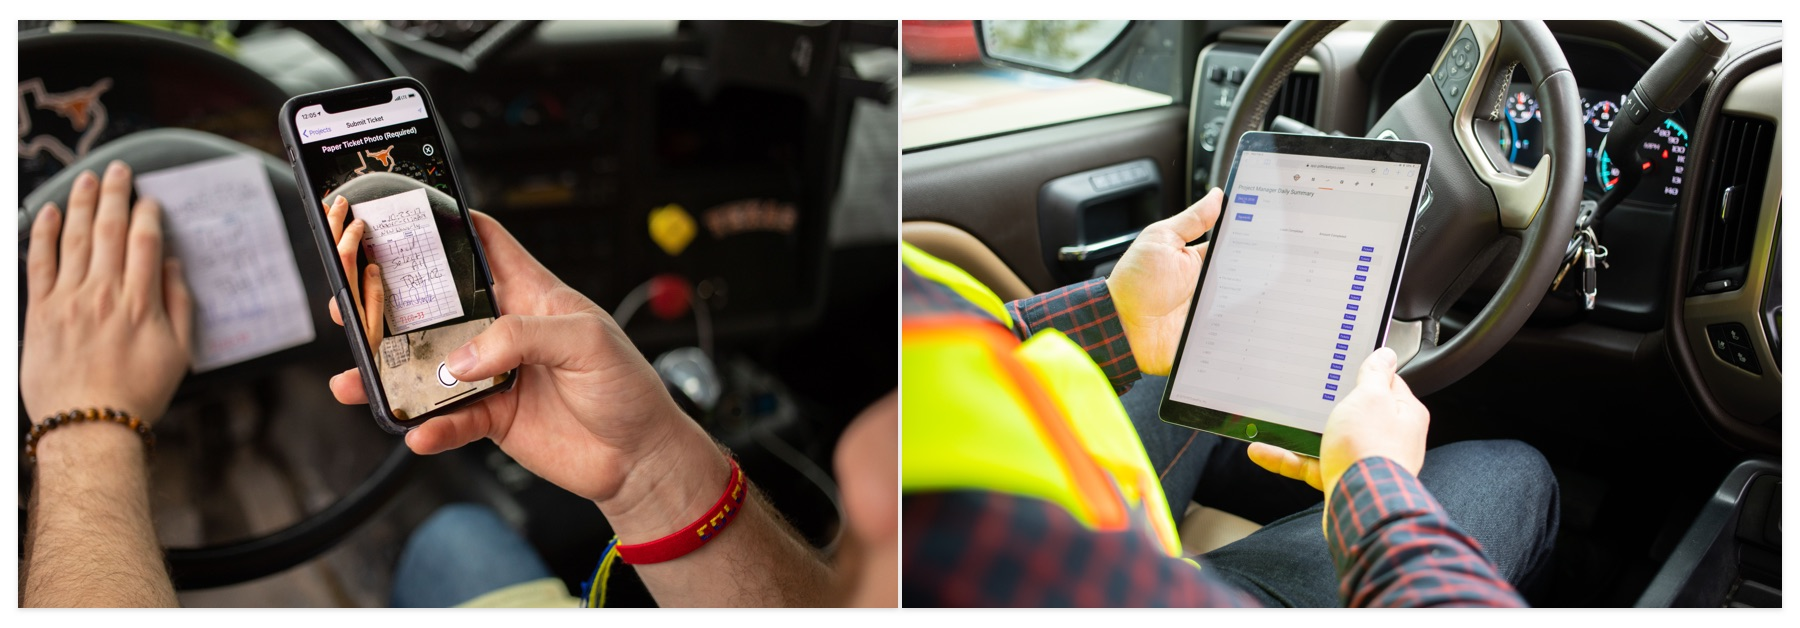 Two drivers using mobile devices while in vehicles